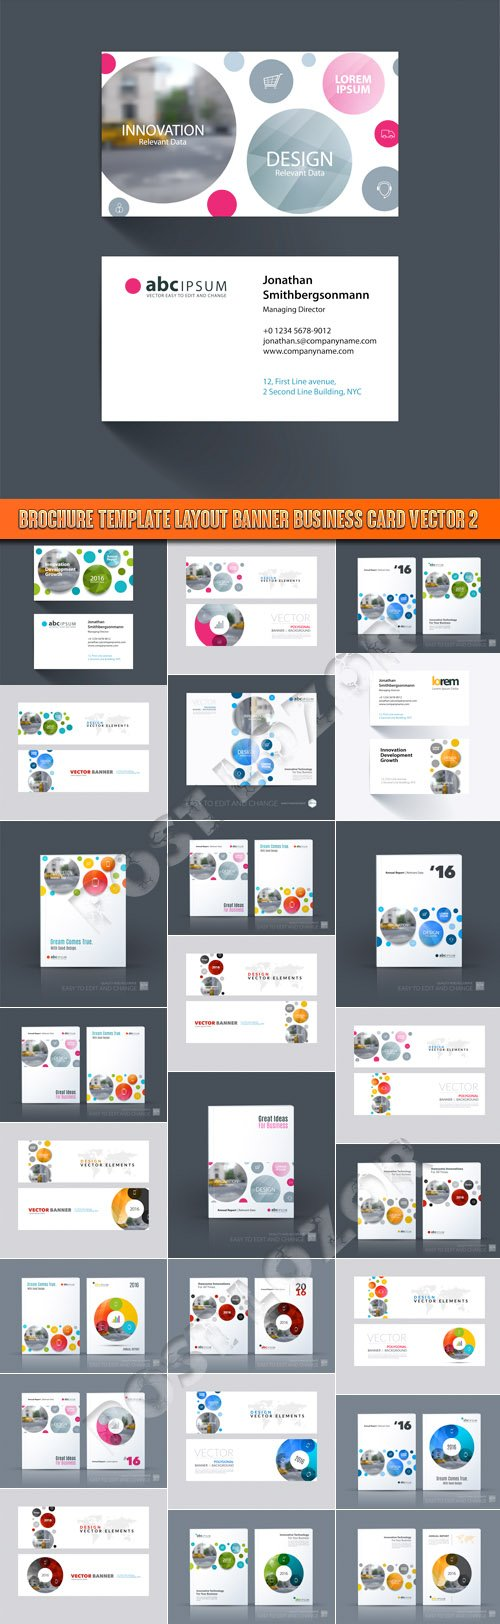 Brochure template layout banner business card vector 2